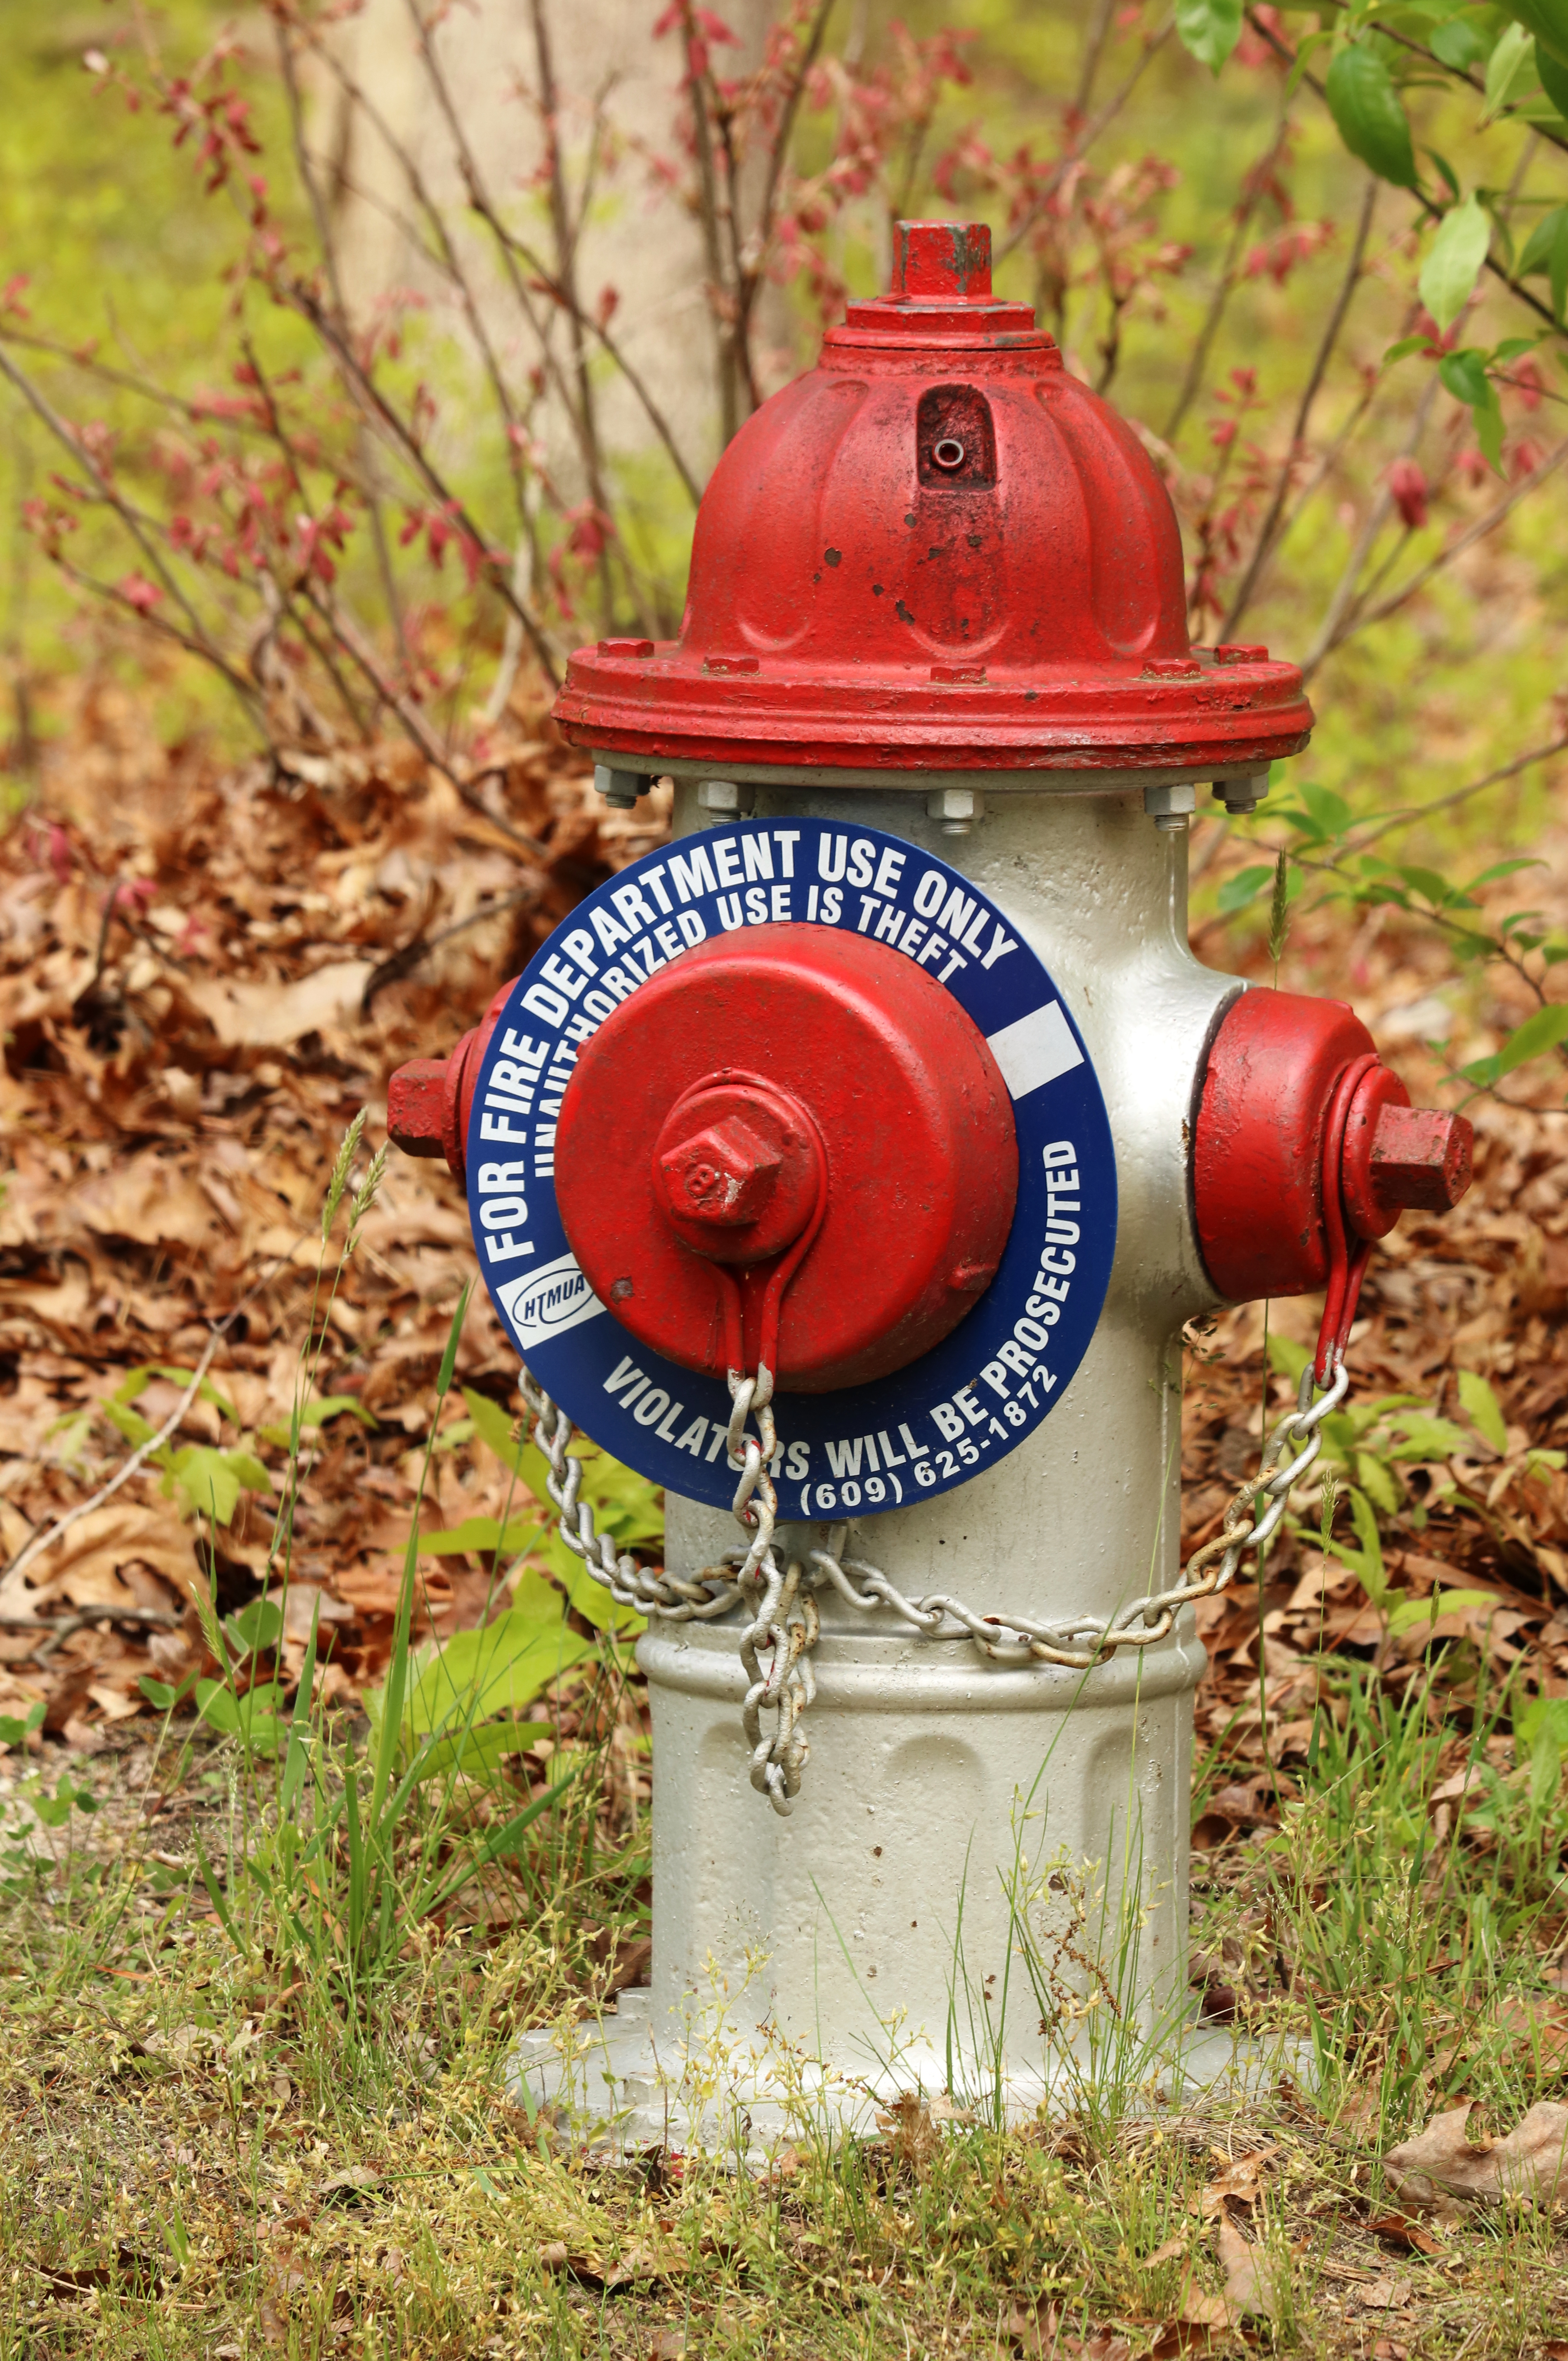 Fire hydrant photo